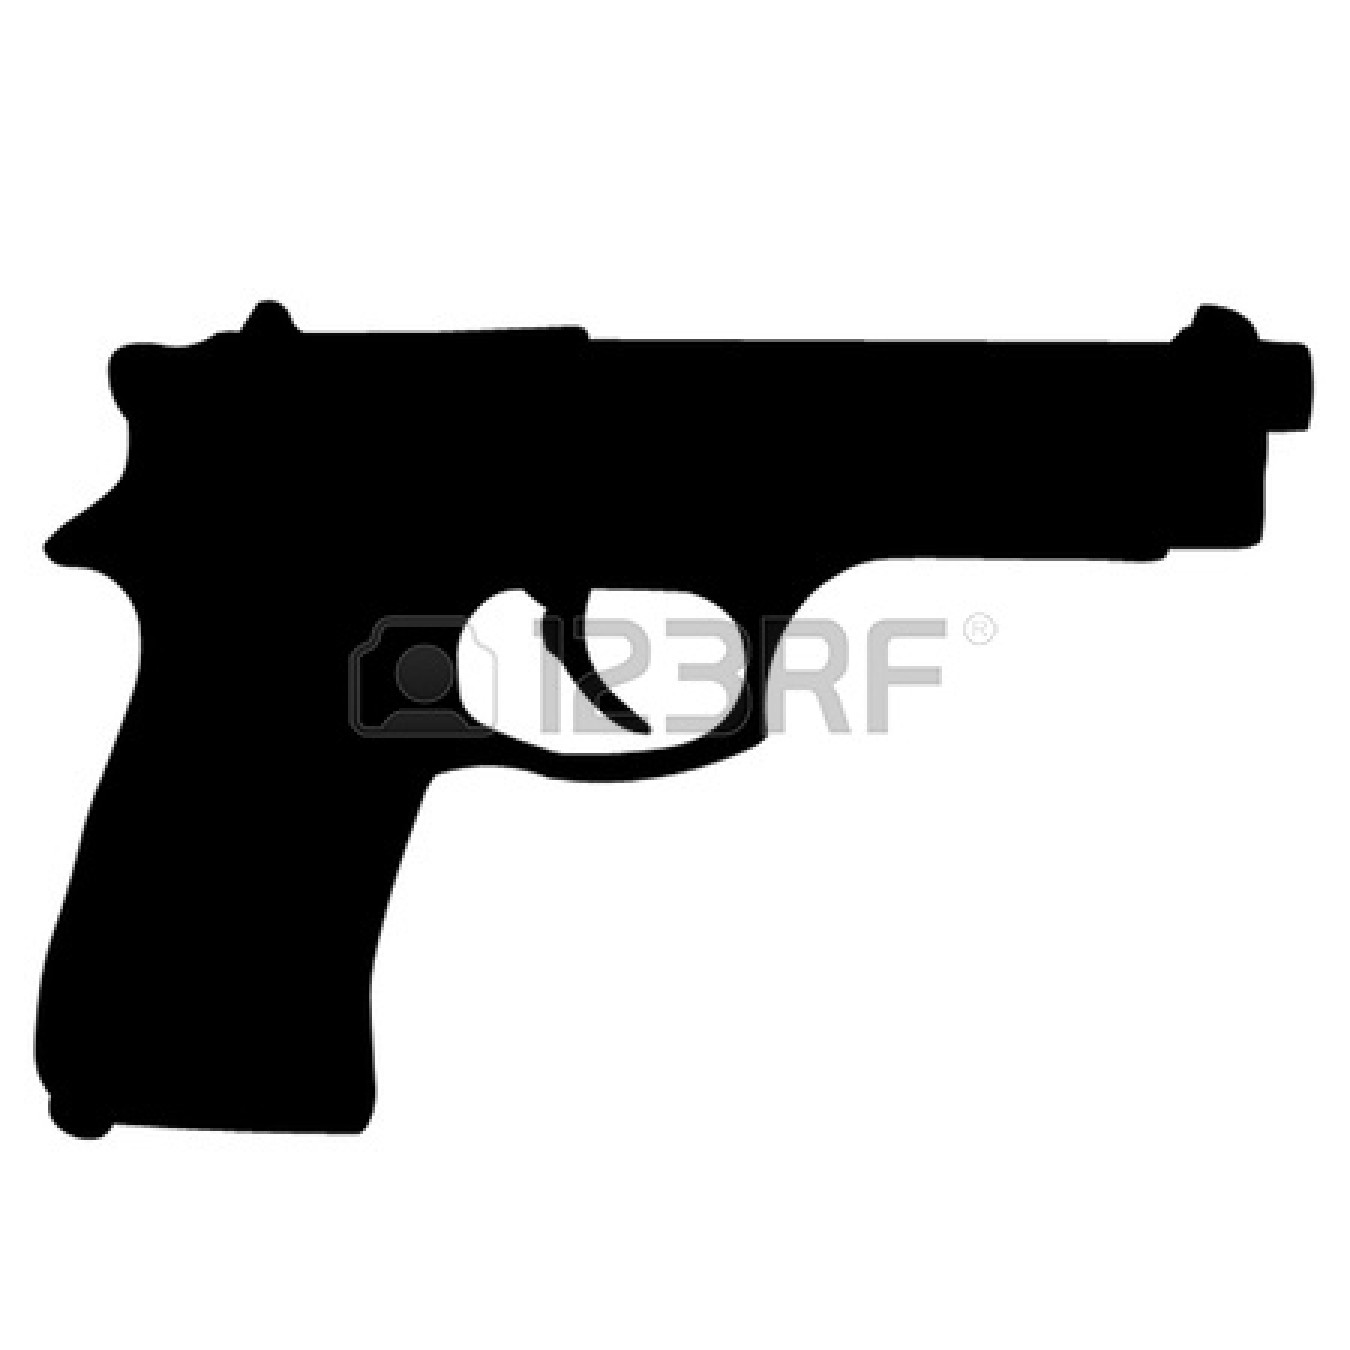 Pistol clipart #4, Download drawings